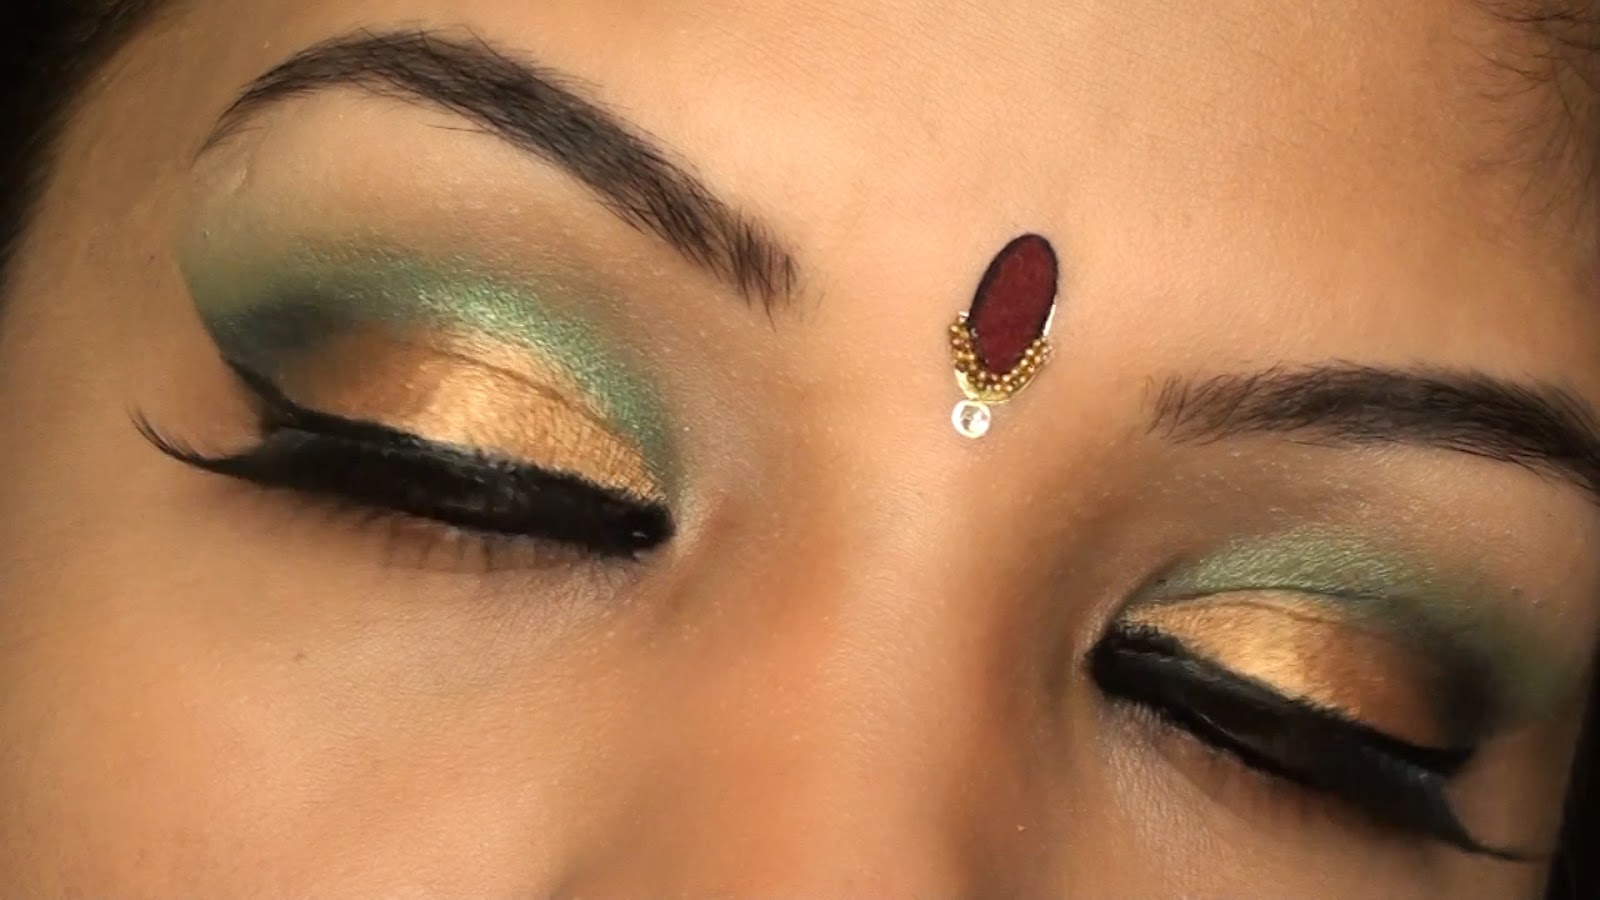 Gold Makeup For Brown Eyes Gold and green eye makeup